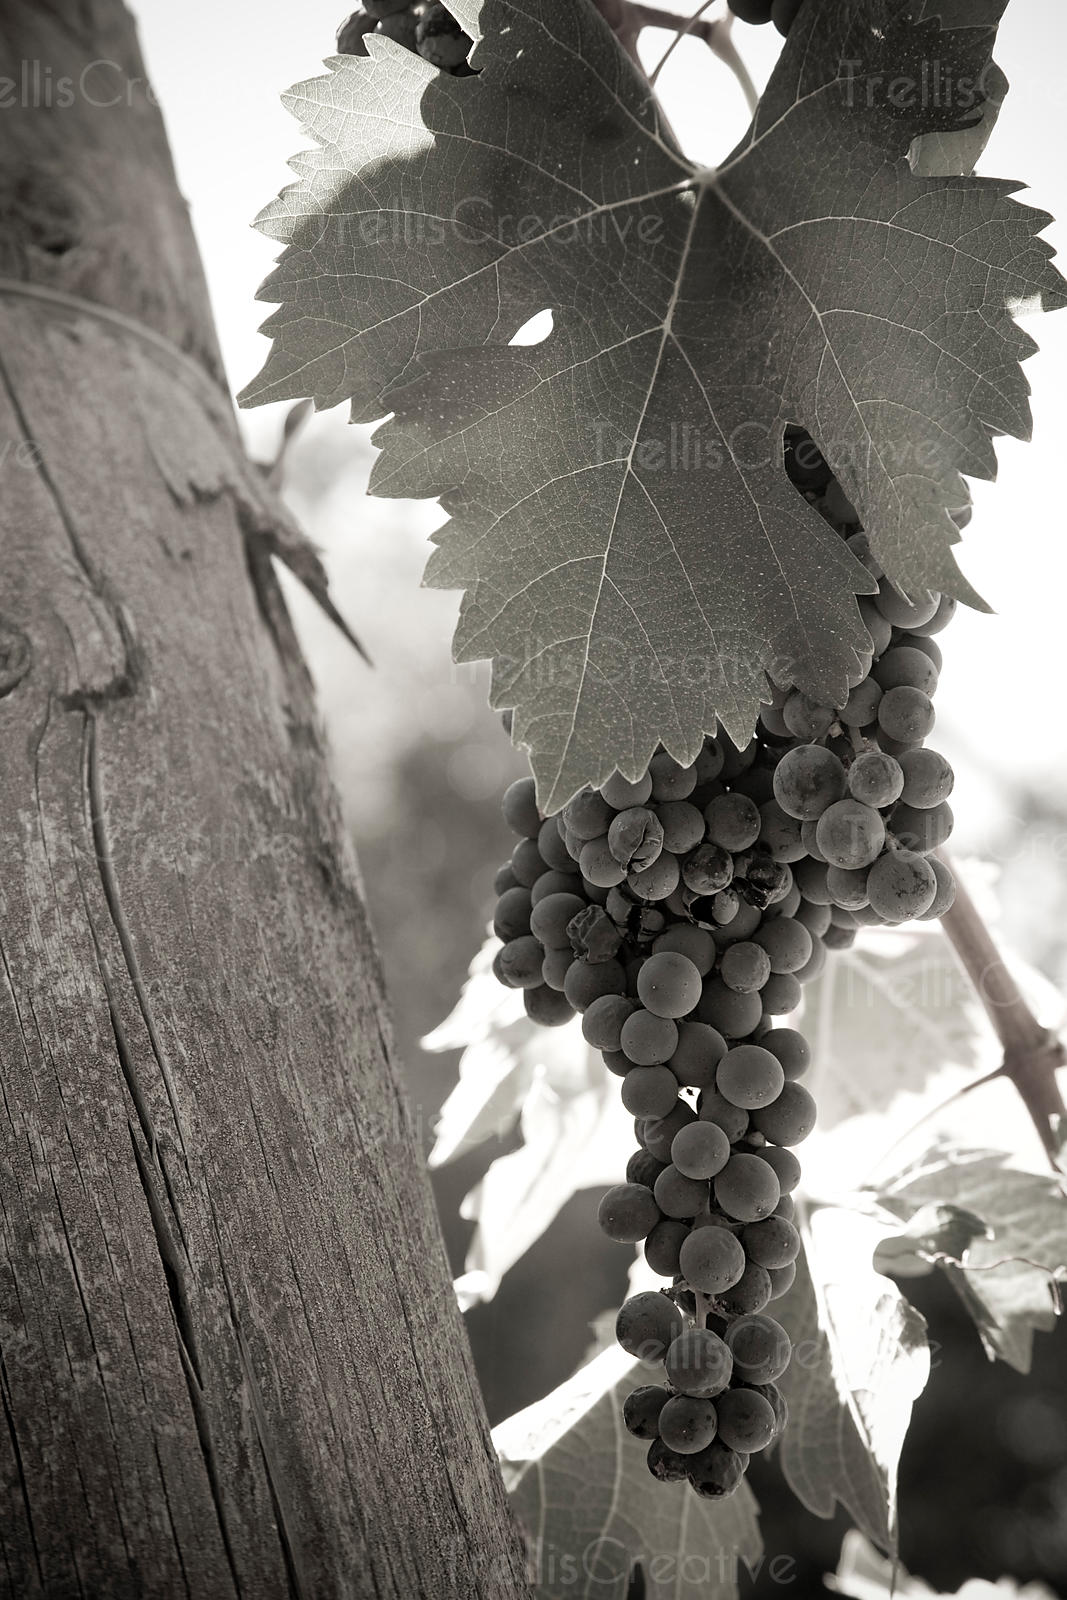 Clusters of ripe merlot wine grapes hanging on the vine